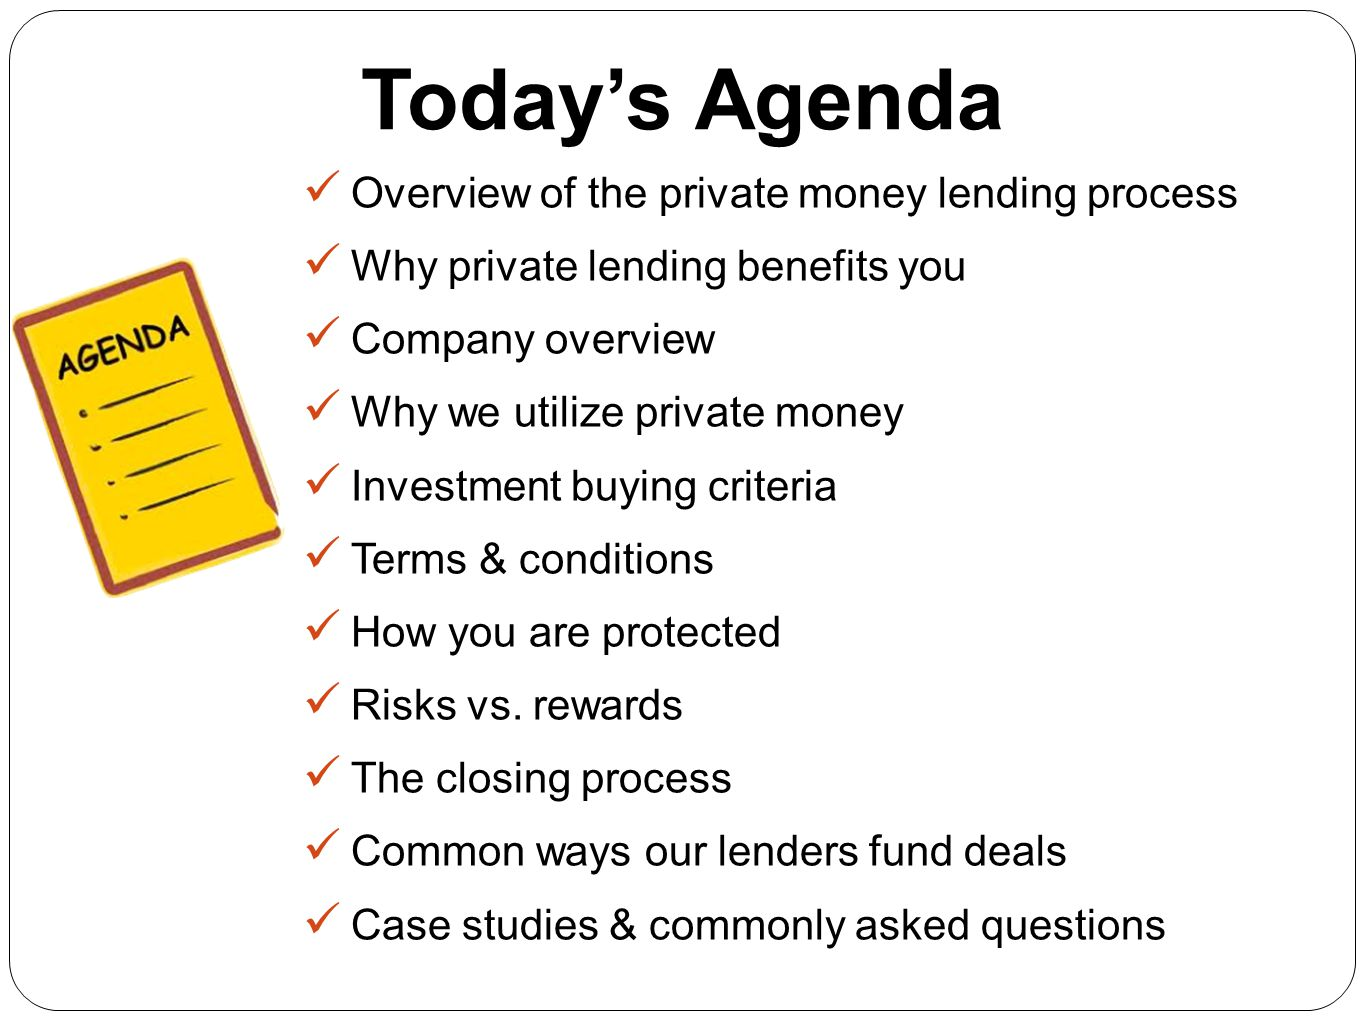 Today's Agenda Overview of the private money lending process